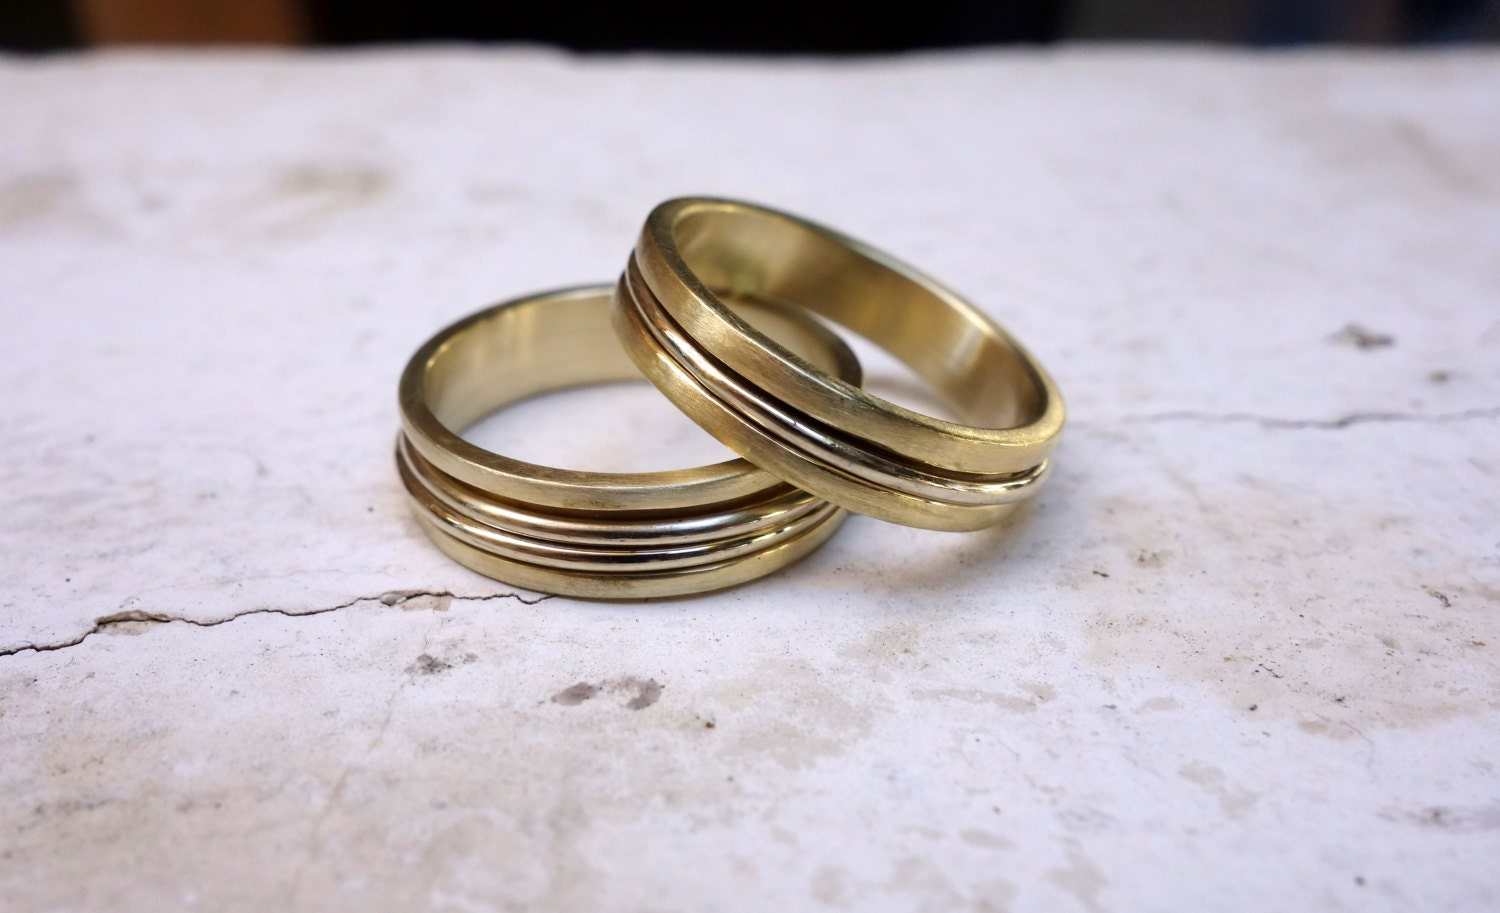 Matching Wedding Rings His And Hers Wedding Bands Mixed Metal